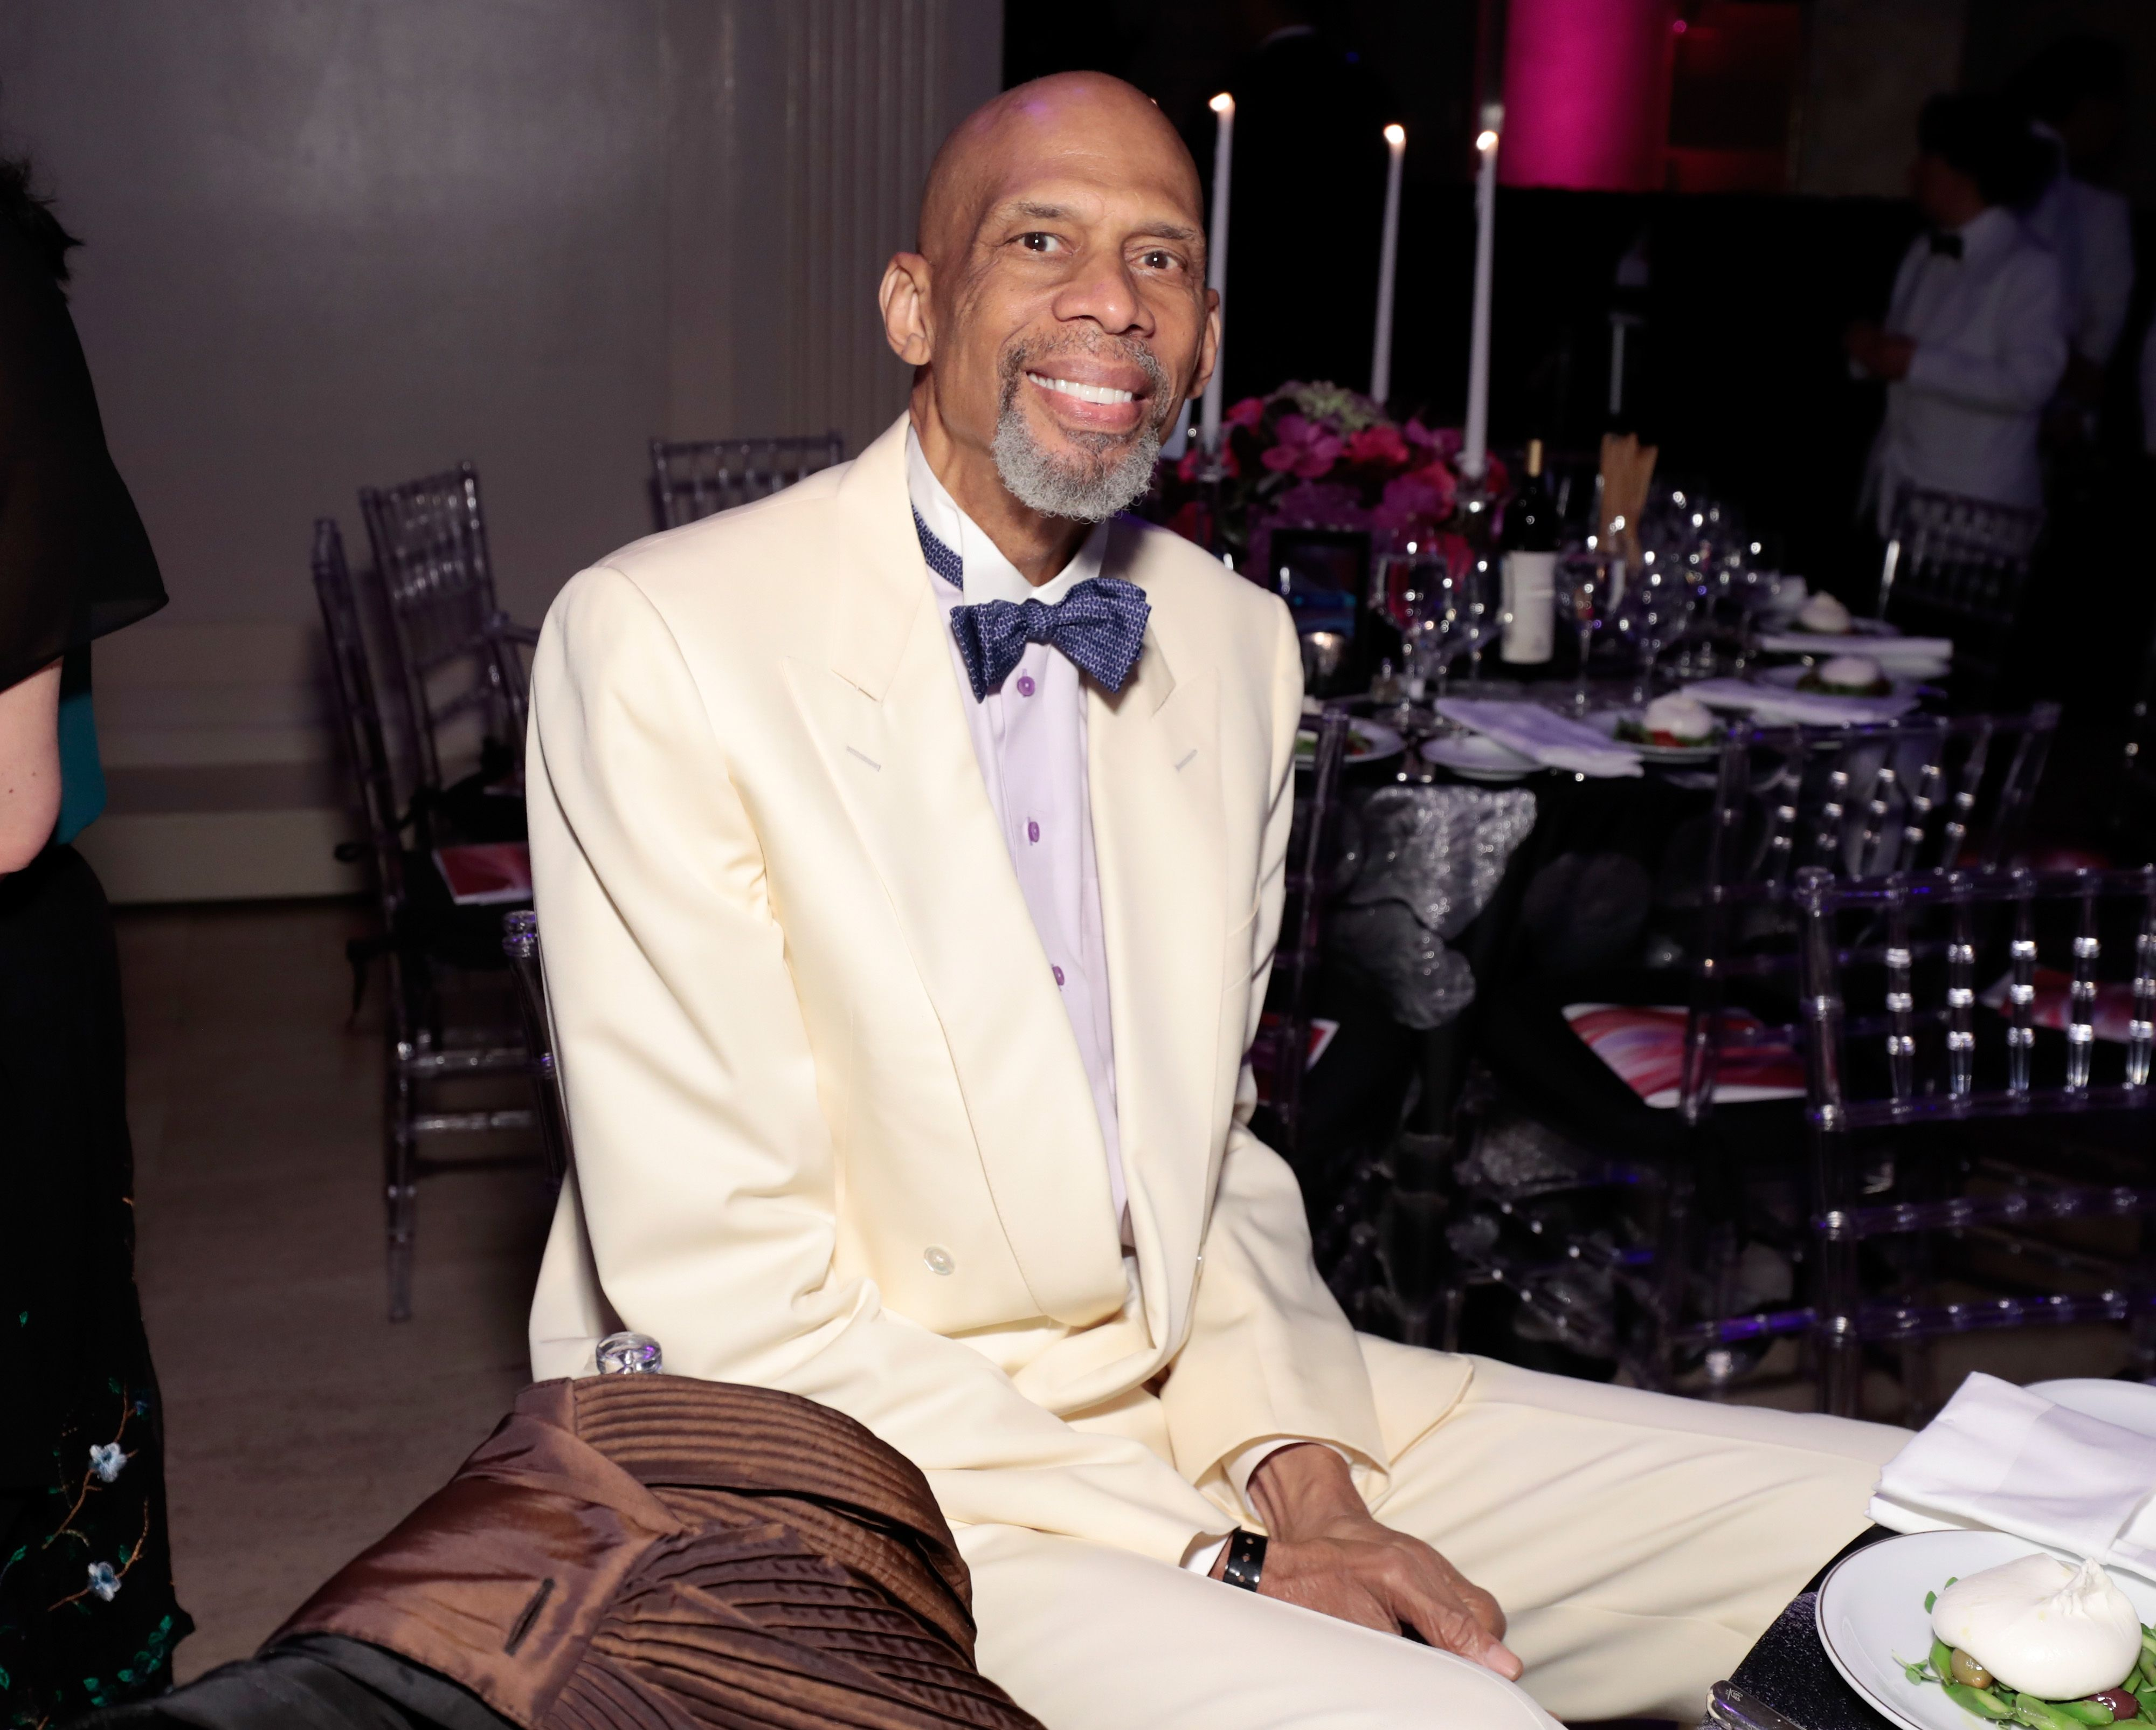 Kareem Abdul-Jabbar at Gabrielle's Angel Foundation's Angel Ball 2017 in New York City | Source: Getty Images